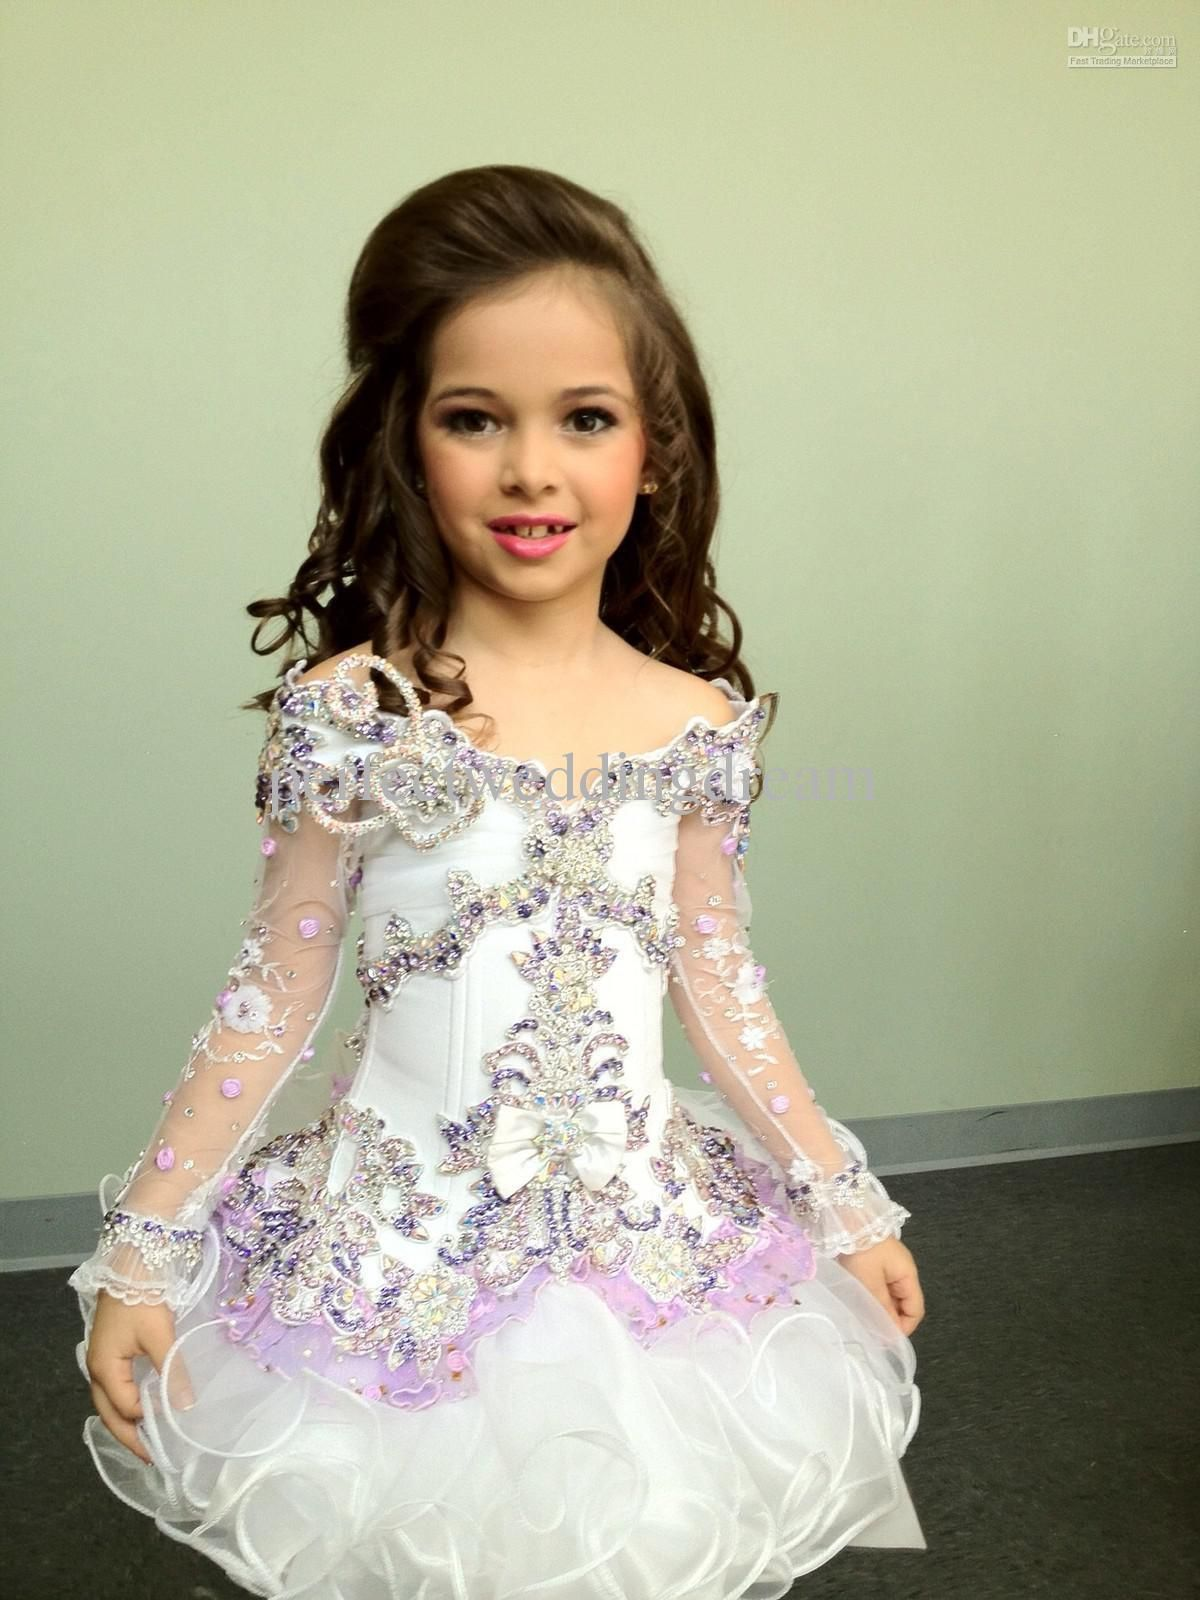 Glitz pageant dresses for rent - Beautiful High Glitz Flower Girl Pageant Dresses Cupcake Dress White Lavender Custom Made Flower Girl Occasion Gowns Angel Party Dresses